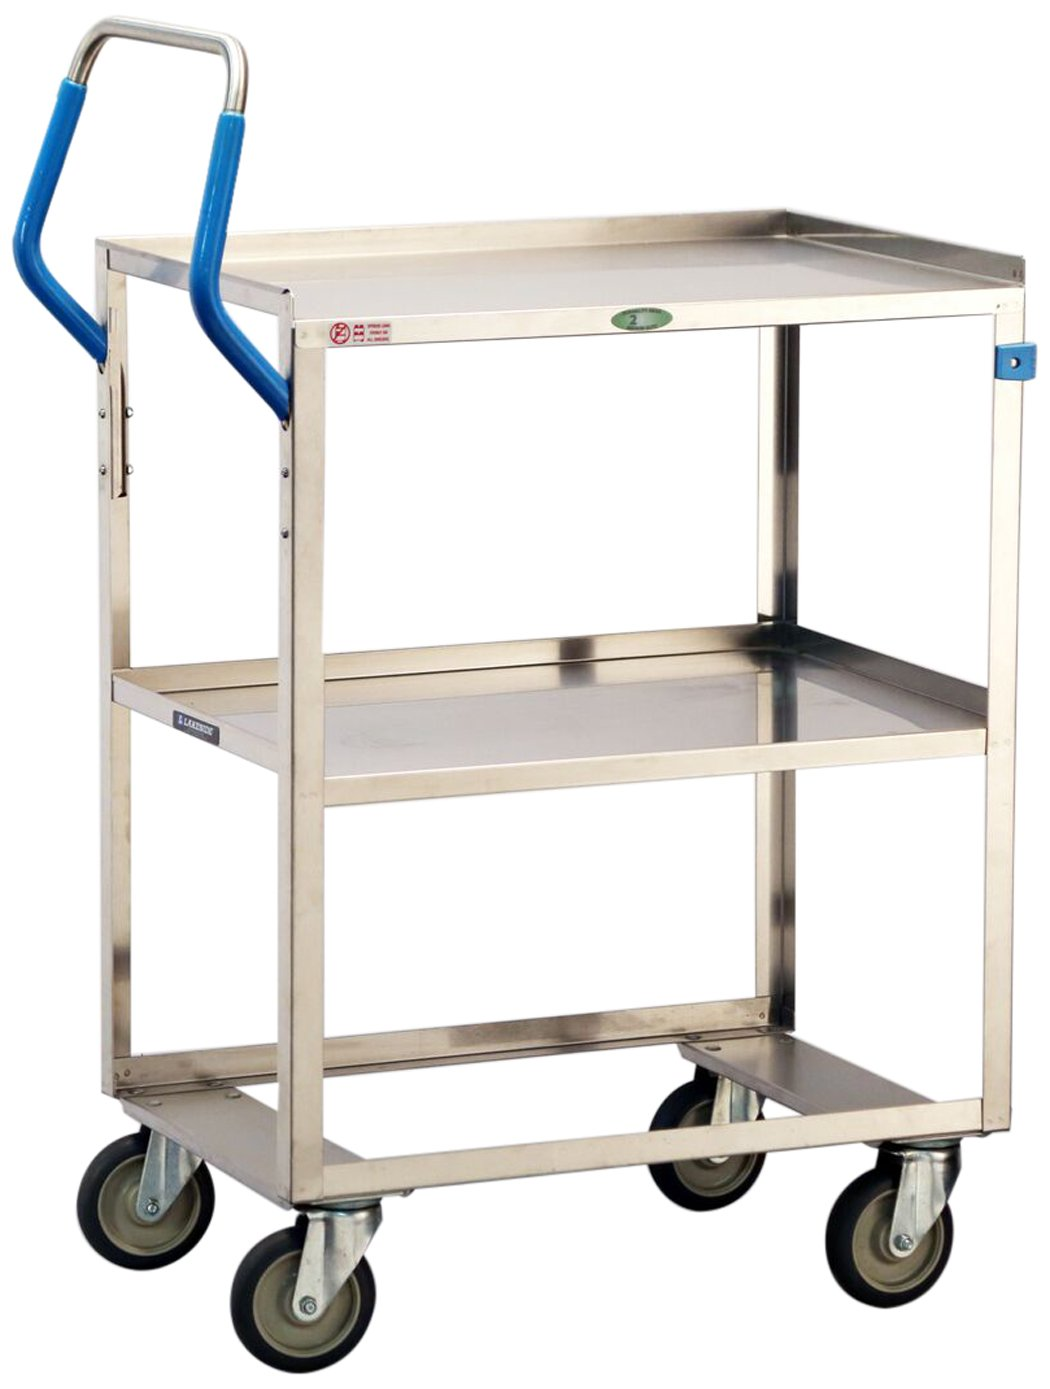 Lakeside 6810 ERGO-ONE Series Stainless Steel Utility Cart 500 lb. Capacity, 2 Shelves, 19'' x 31-1/8'' x 44-3/8''